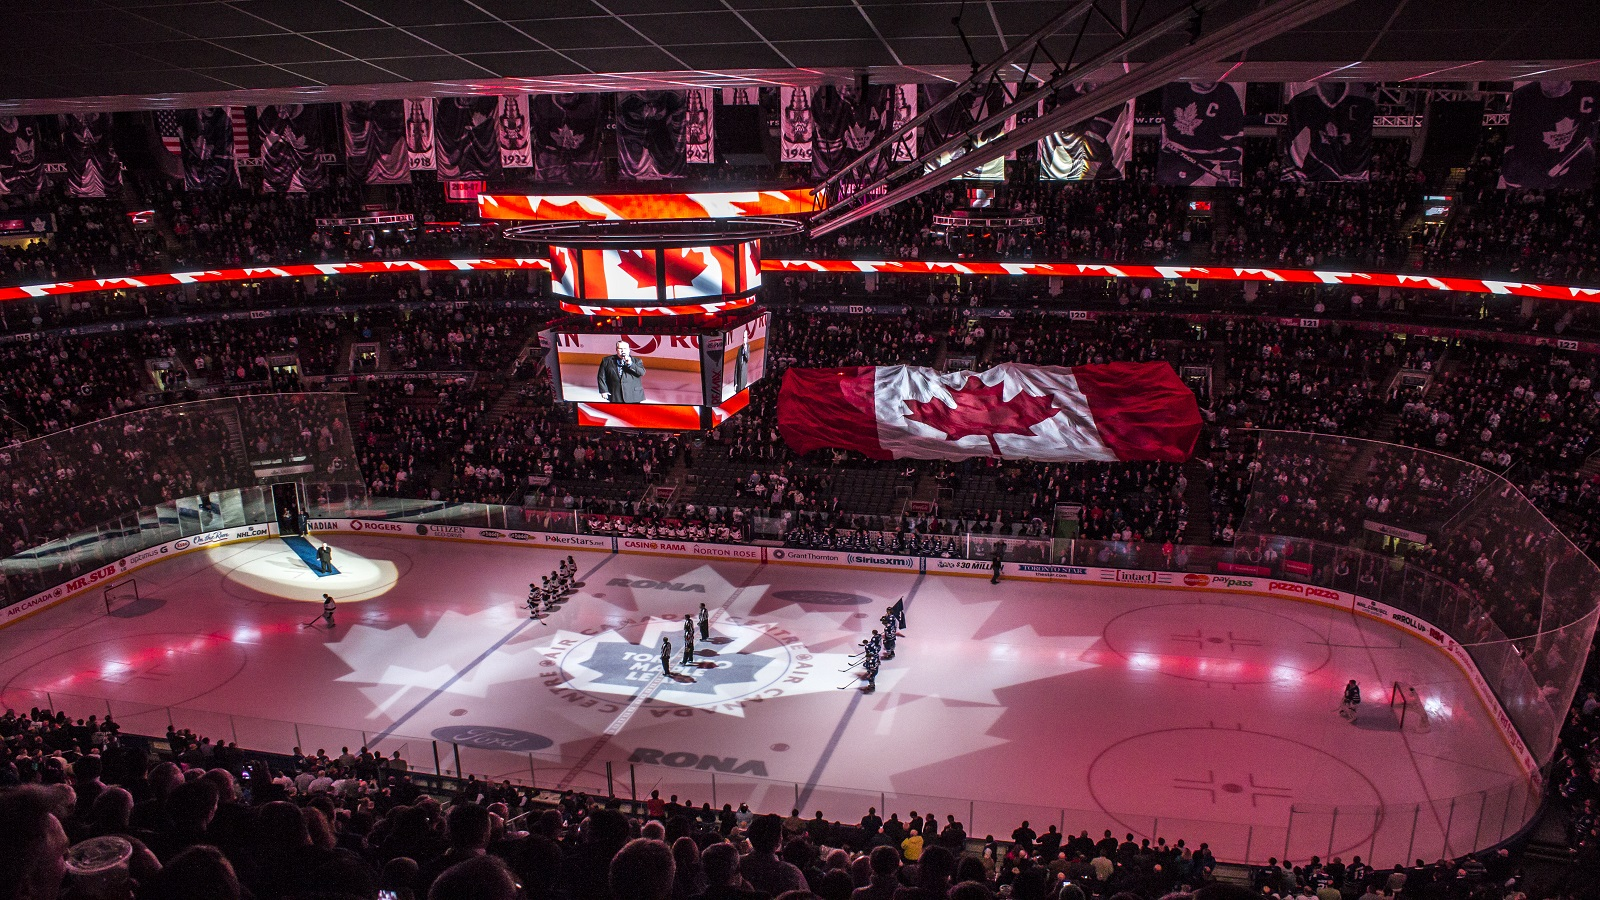 Things to do in Toronto - Air Canada Centre